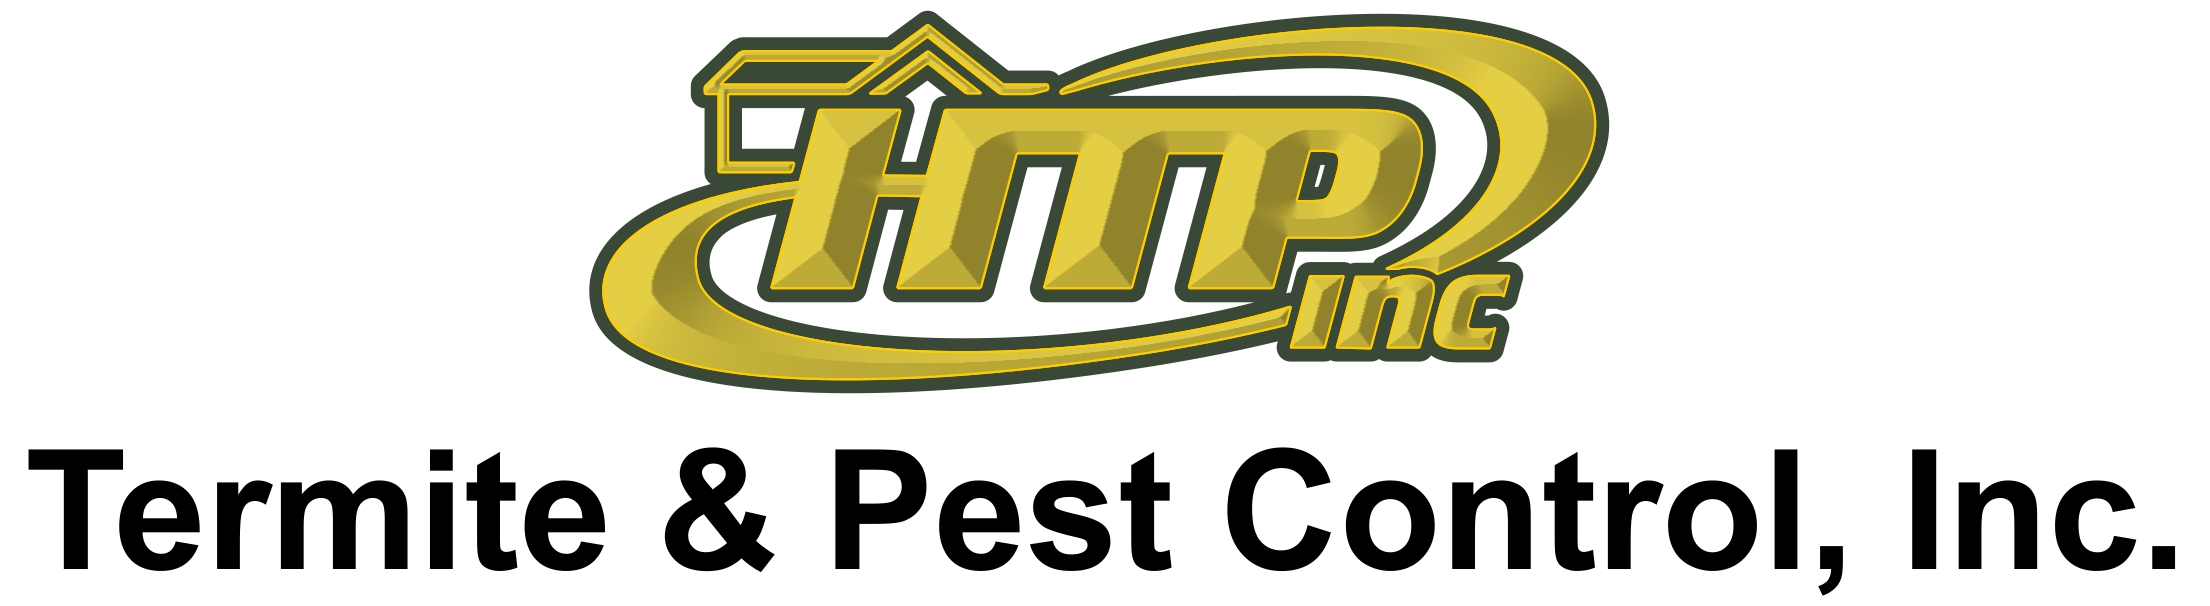 HTP_logo_beveled_with_name_type1_highres.jpg